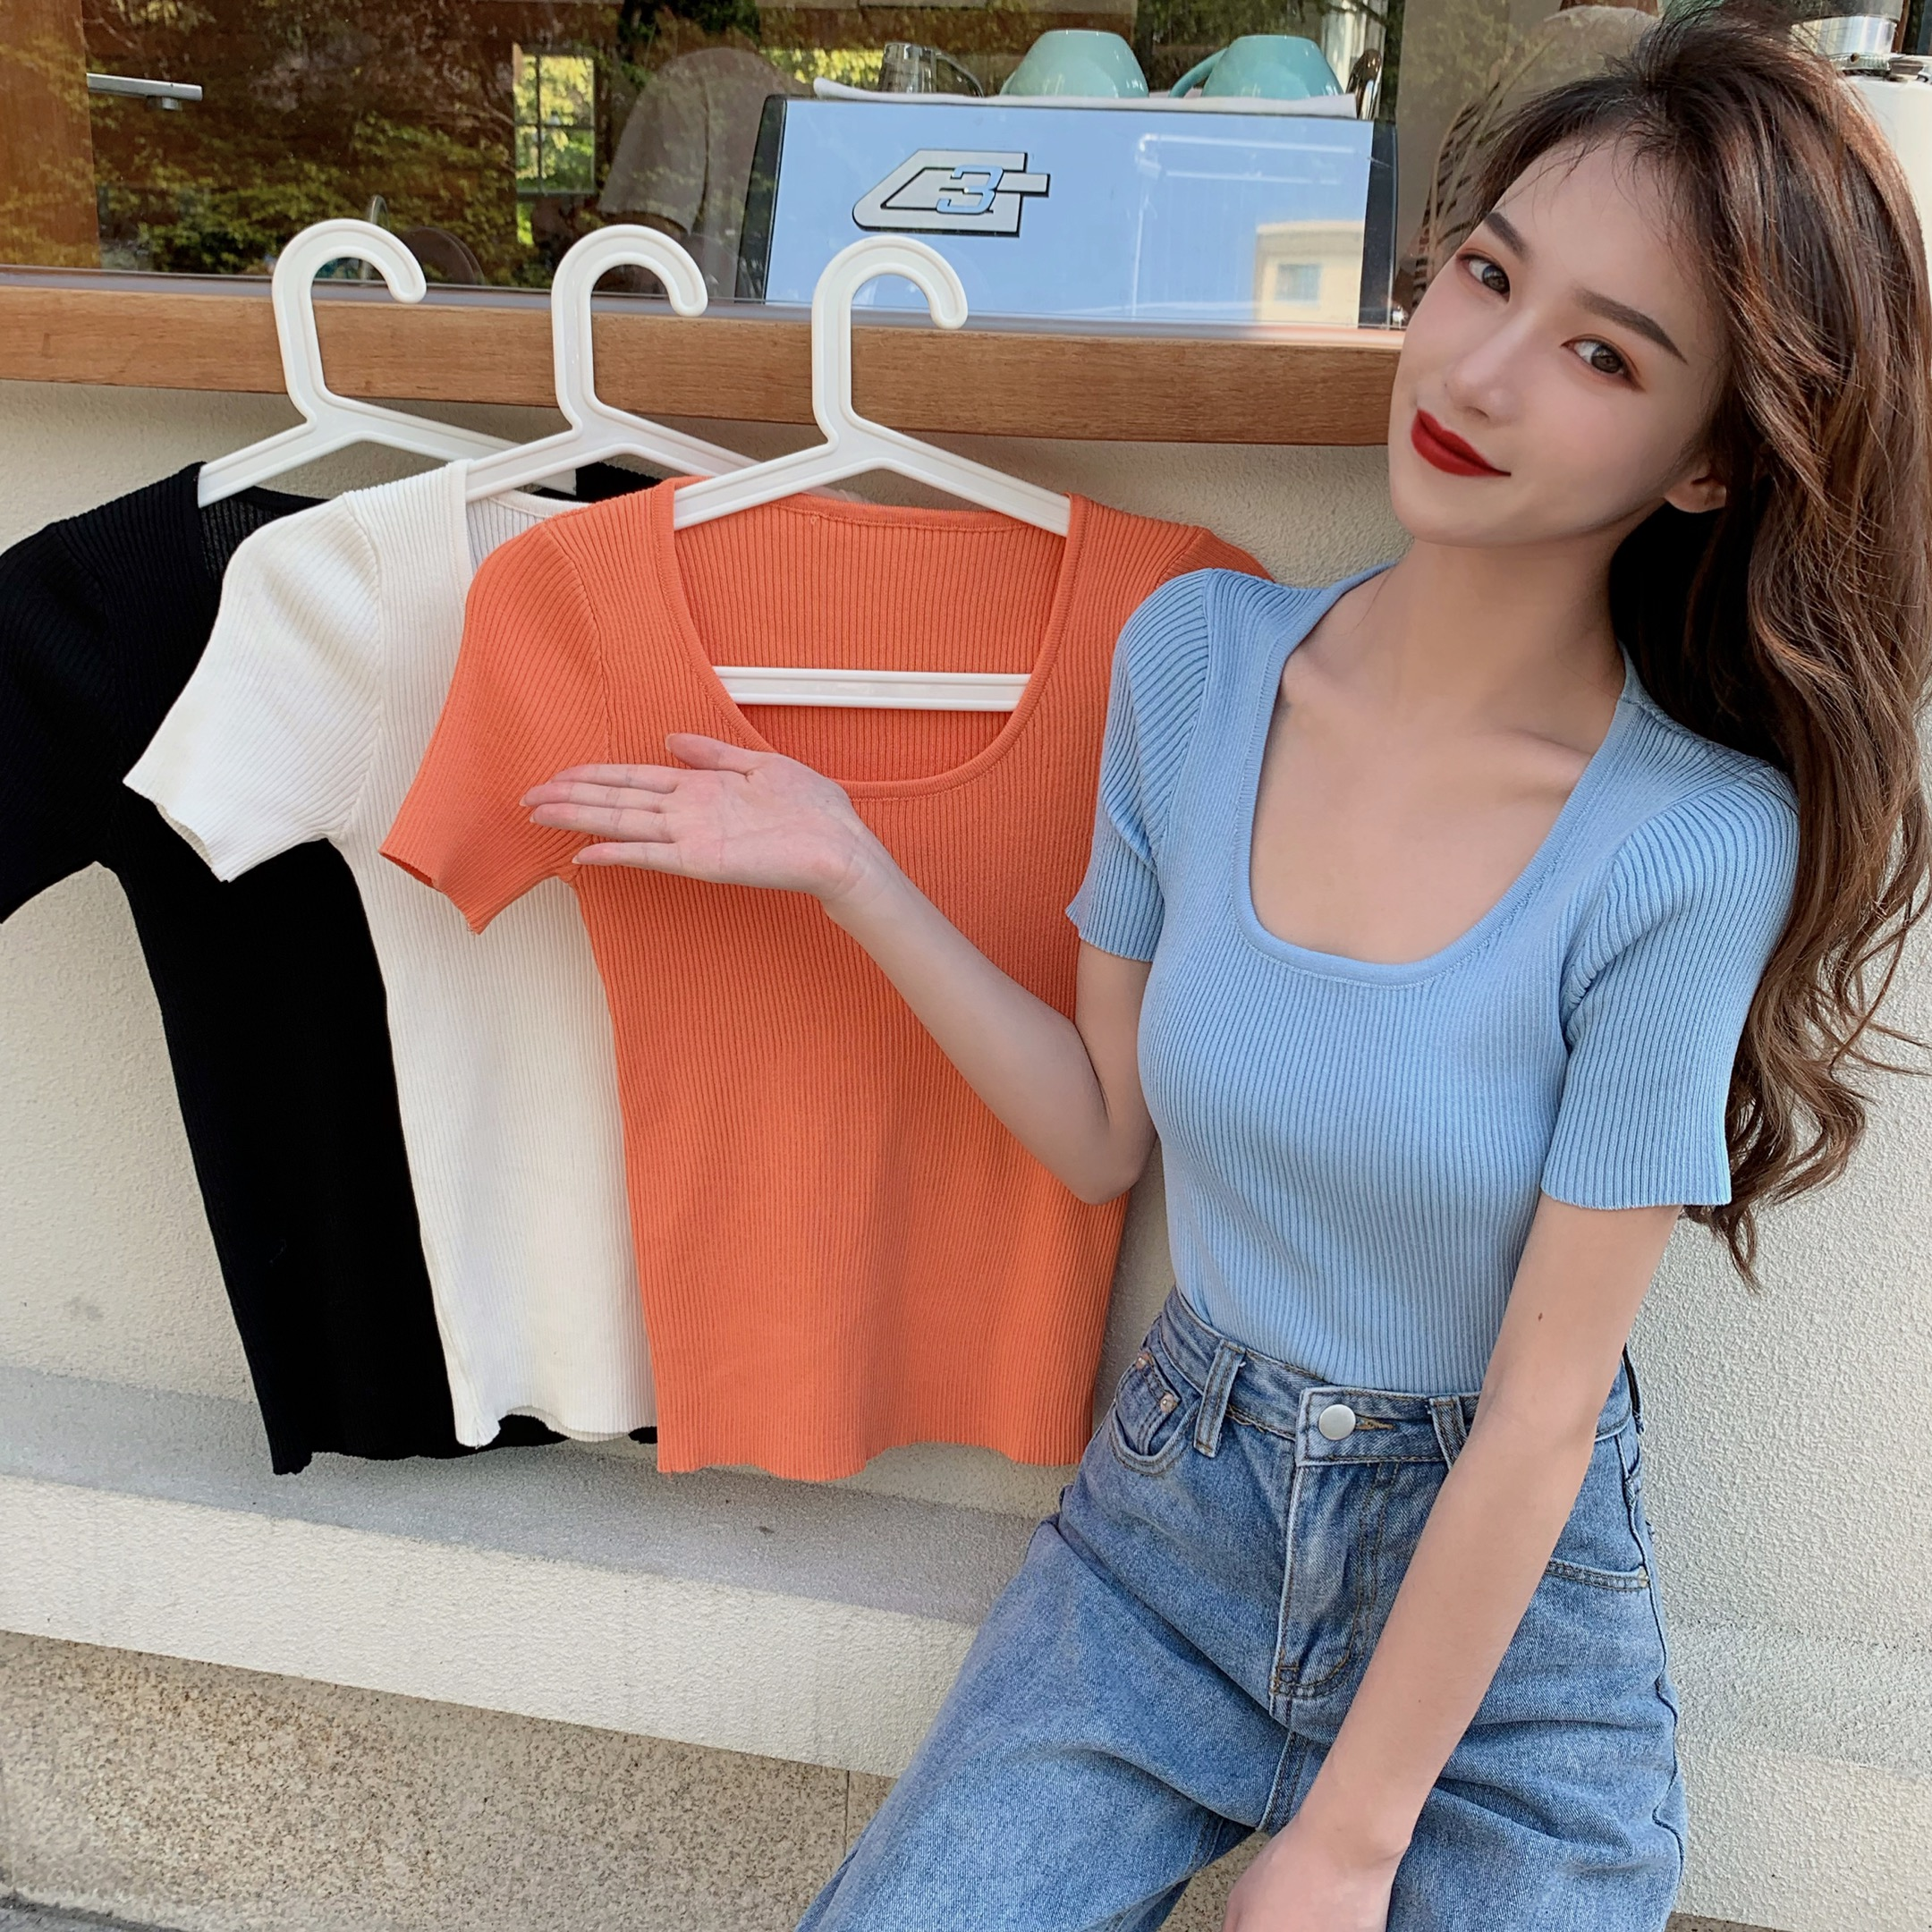 Solid Square Collar Stretchy Knitted Cropped T-shirt New Female Short Sleeve Simple Slim Tshirts Tops For Girls 2020 Summer